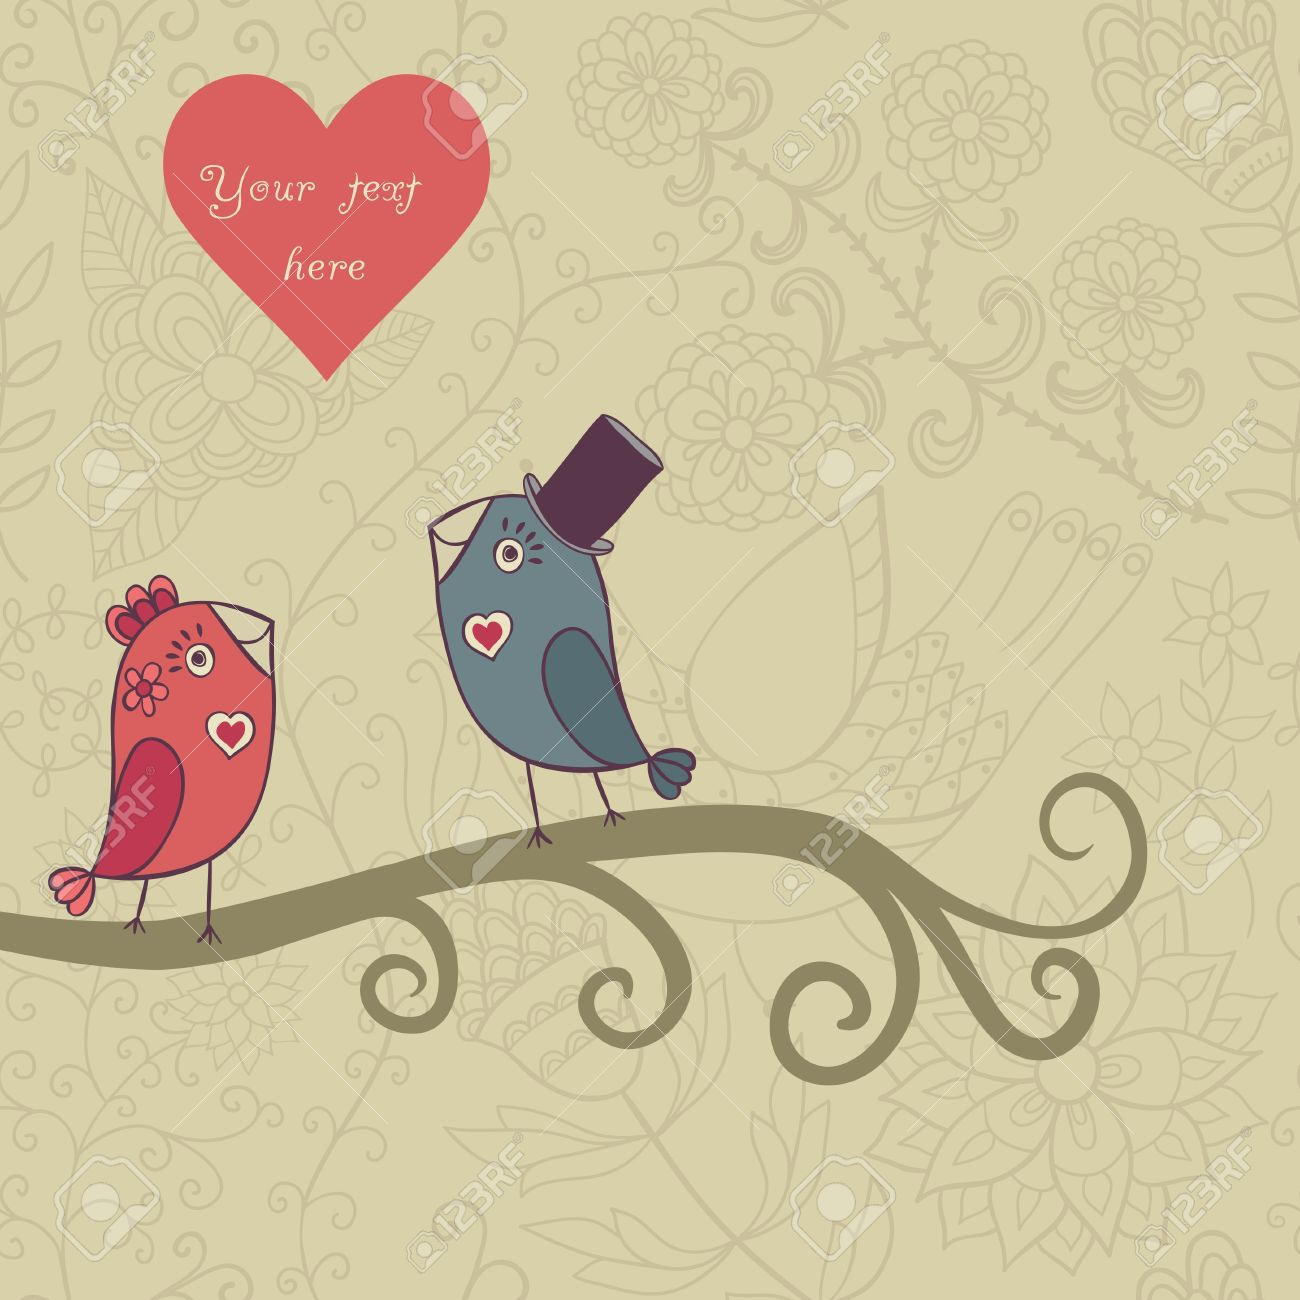 Beautiful Birds In Love Illustration Of Cartoon Birds On Branch